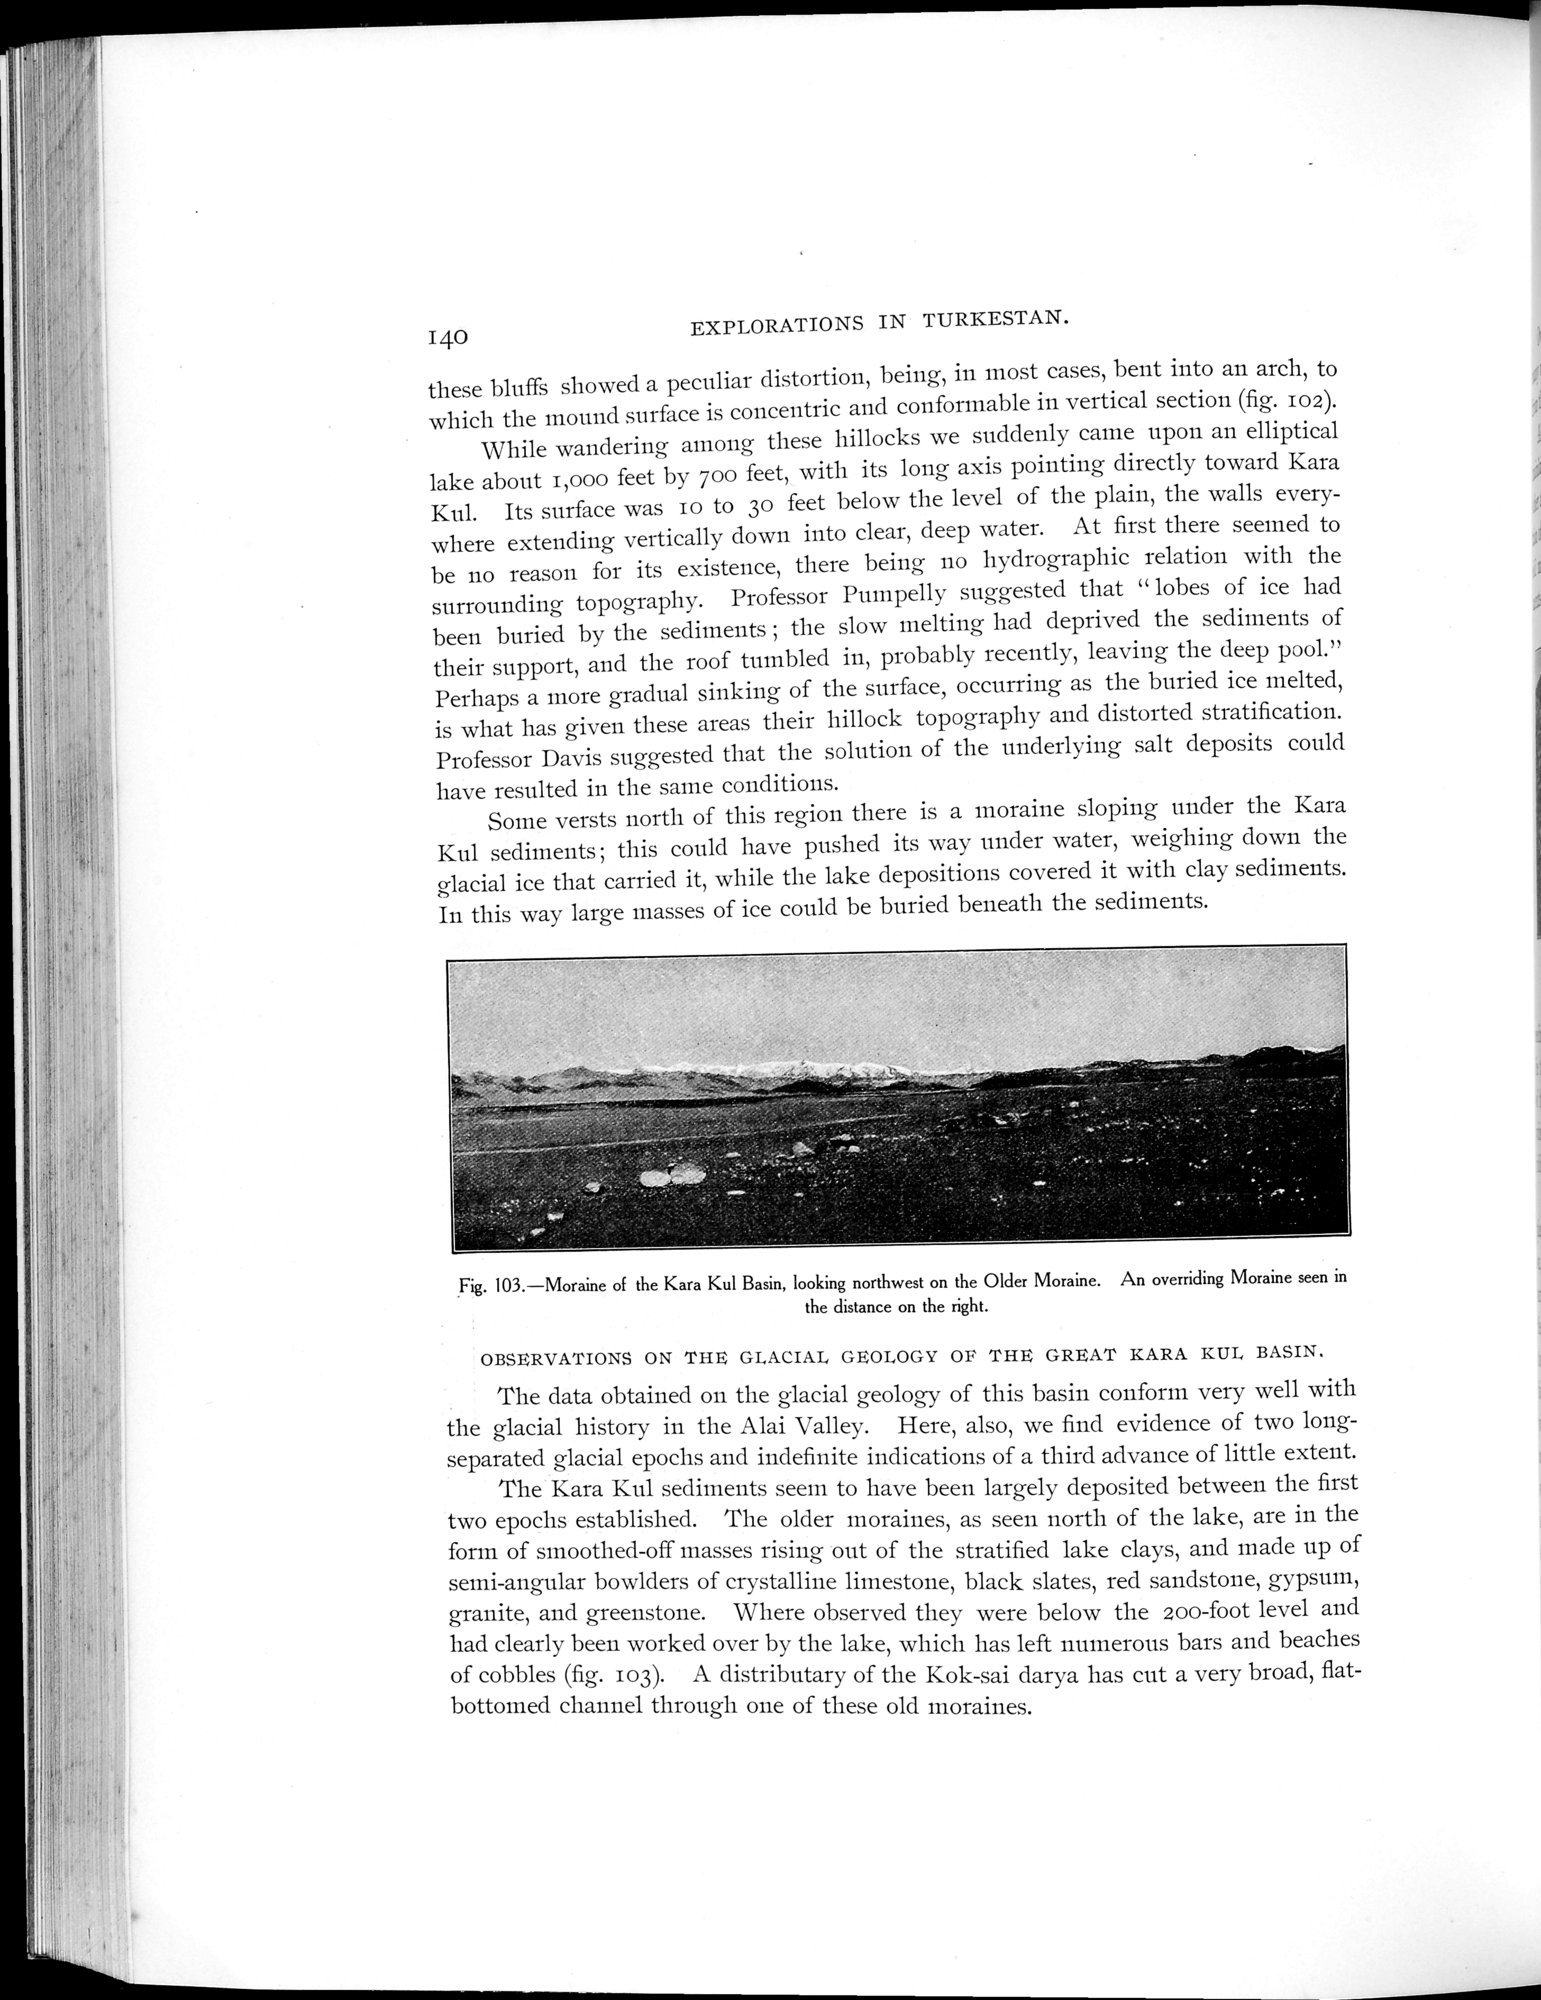 Explorations in Turkestan 1903 : vol.1 / Page 166 (Grayscale High Resolution Image)